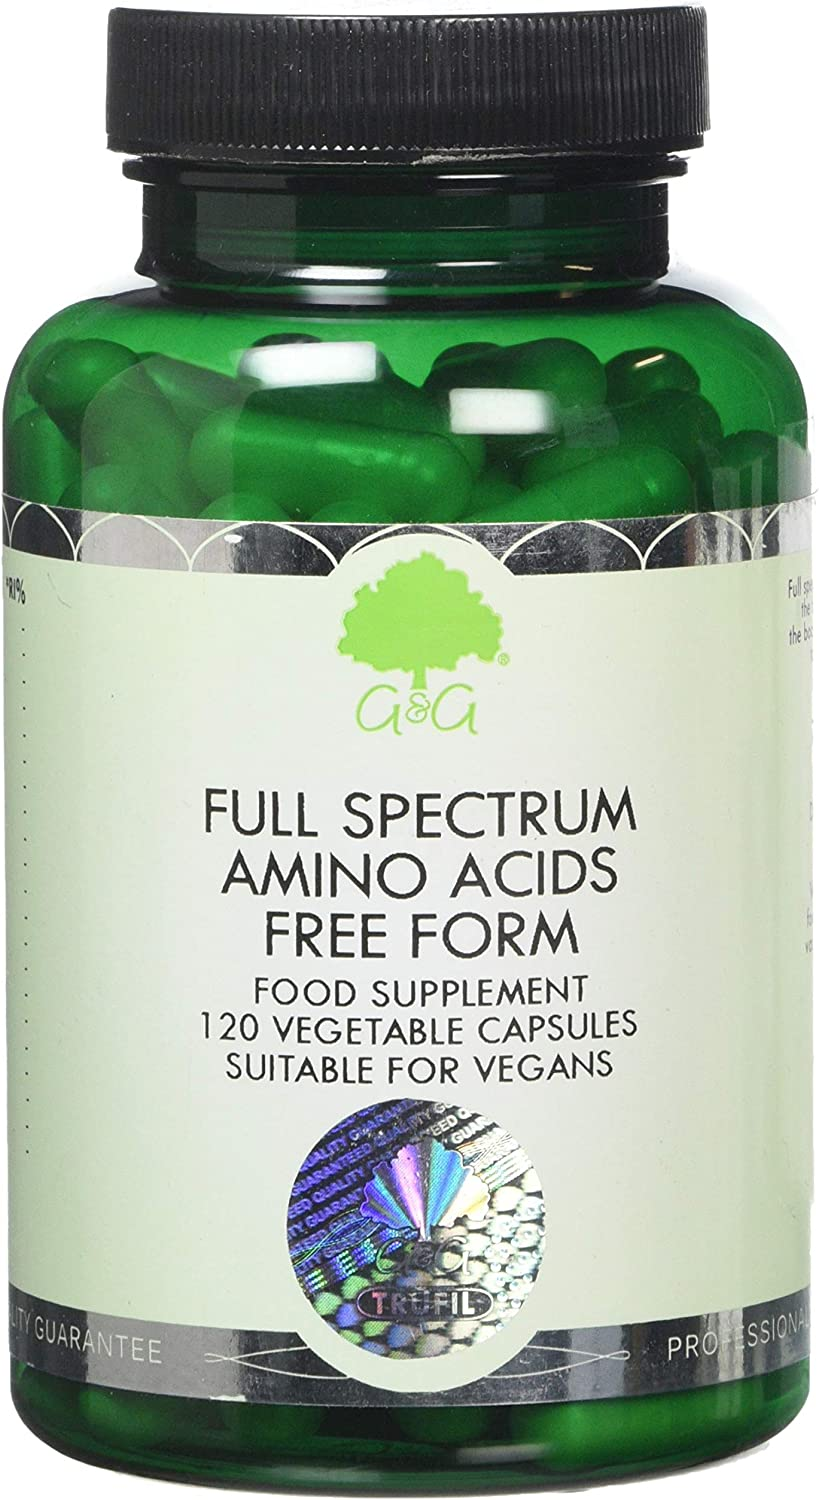 G&G Vitamins Full Spectrum Amino Acid Capsules